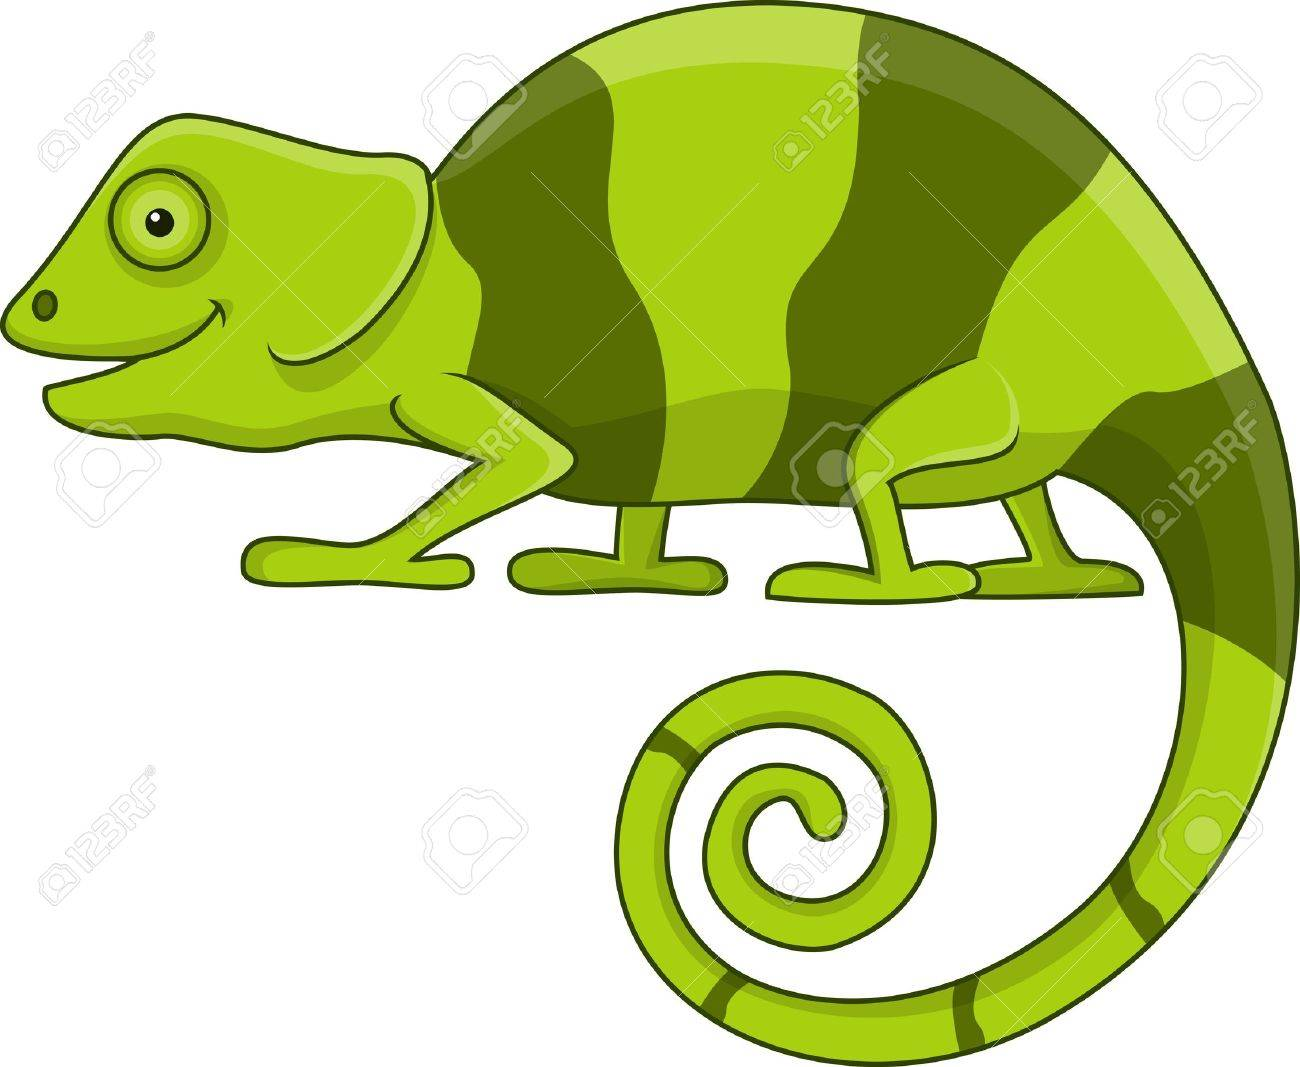 Funny Chameleon Cartoon Royalty Free Cliparts Vectors And Stock Illustration Image 18047060